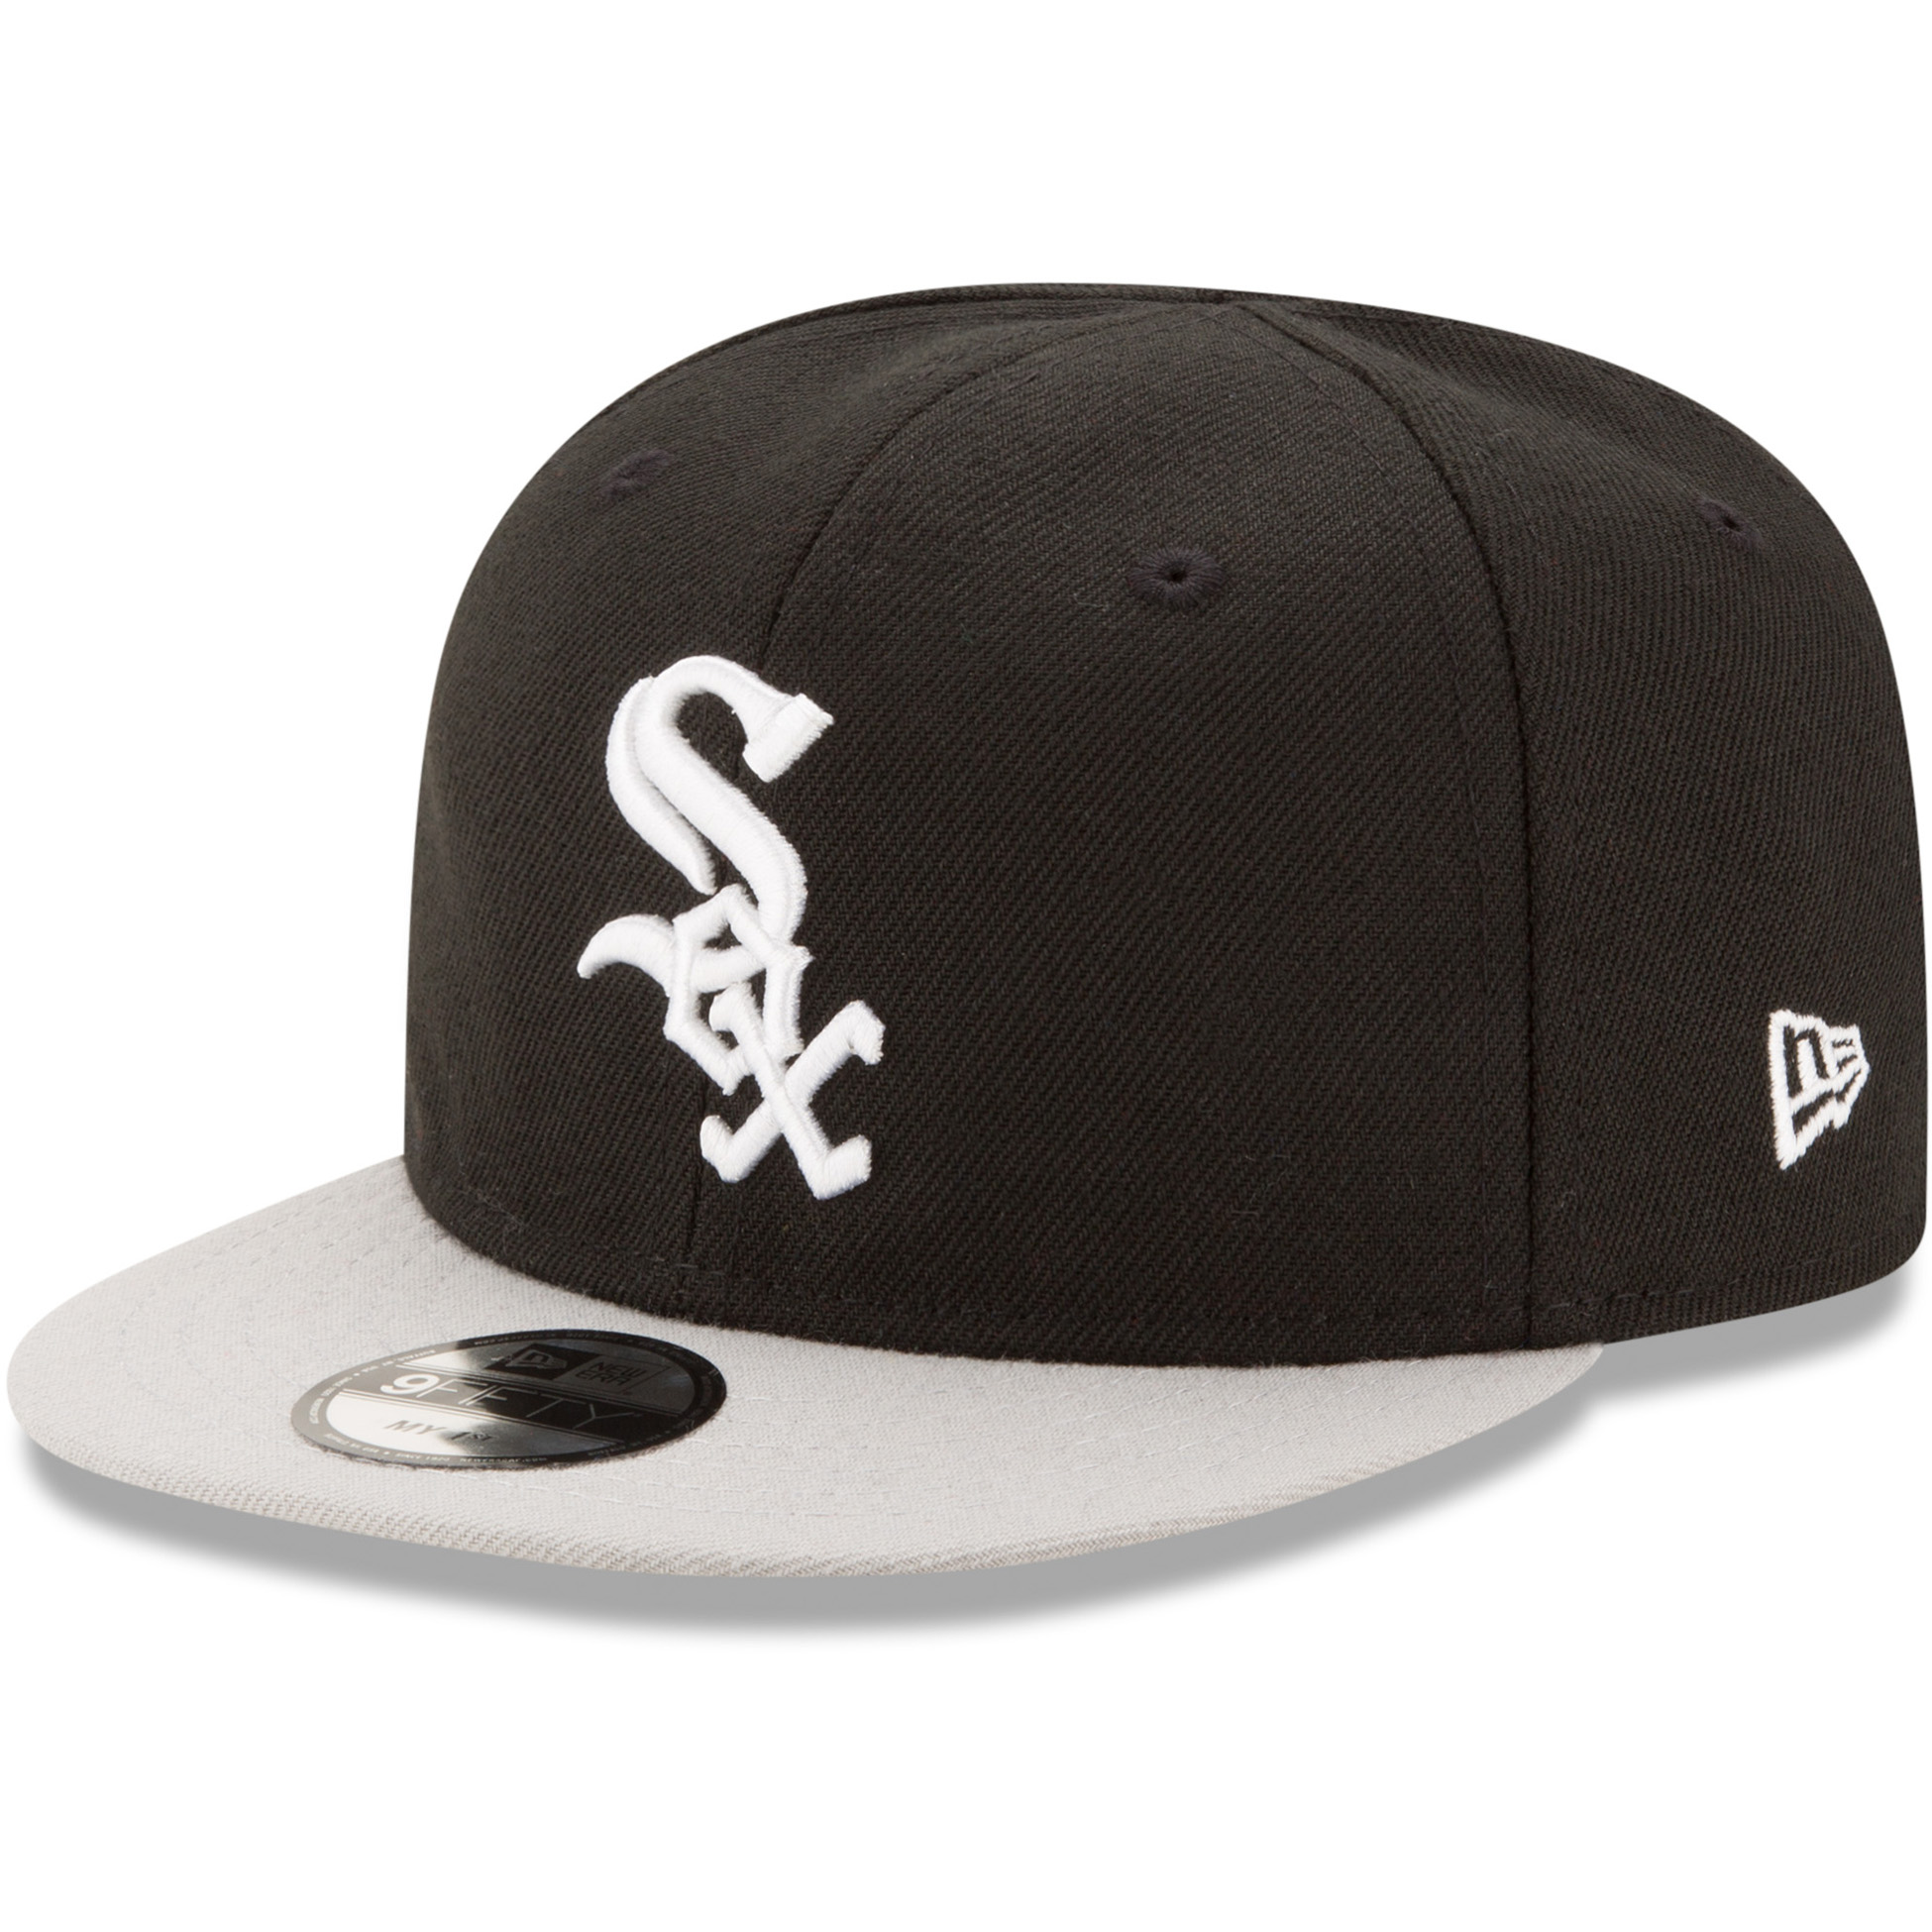 Chicago White Sox New Era Infant My First 9FIFTY Adjustable Hat - Black - OSFA